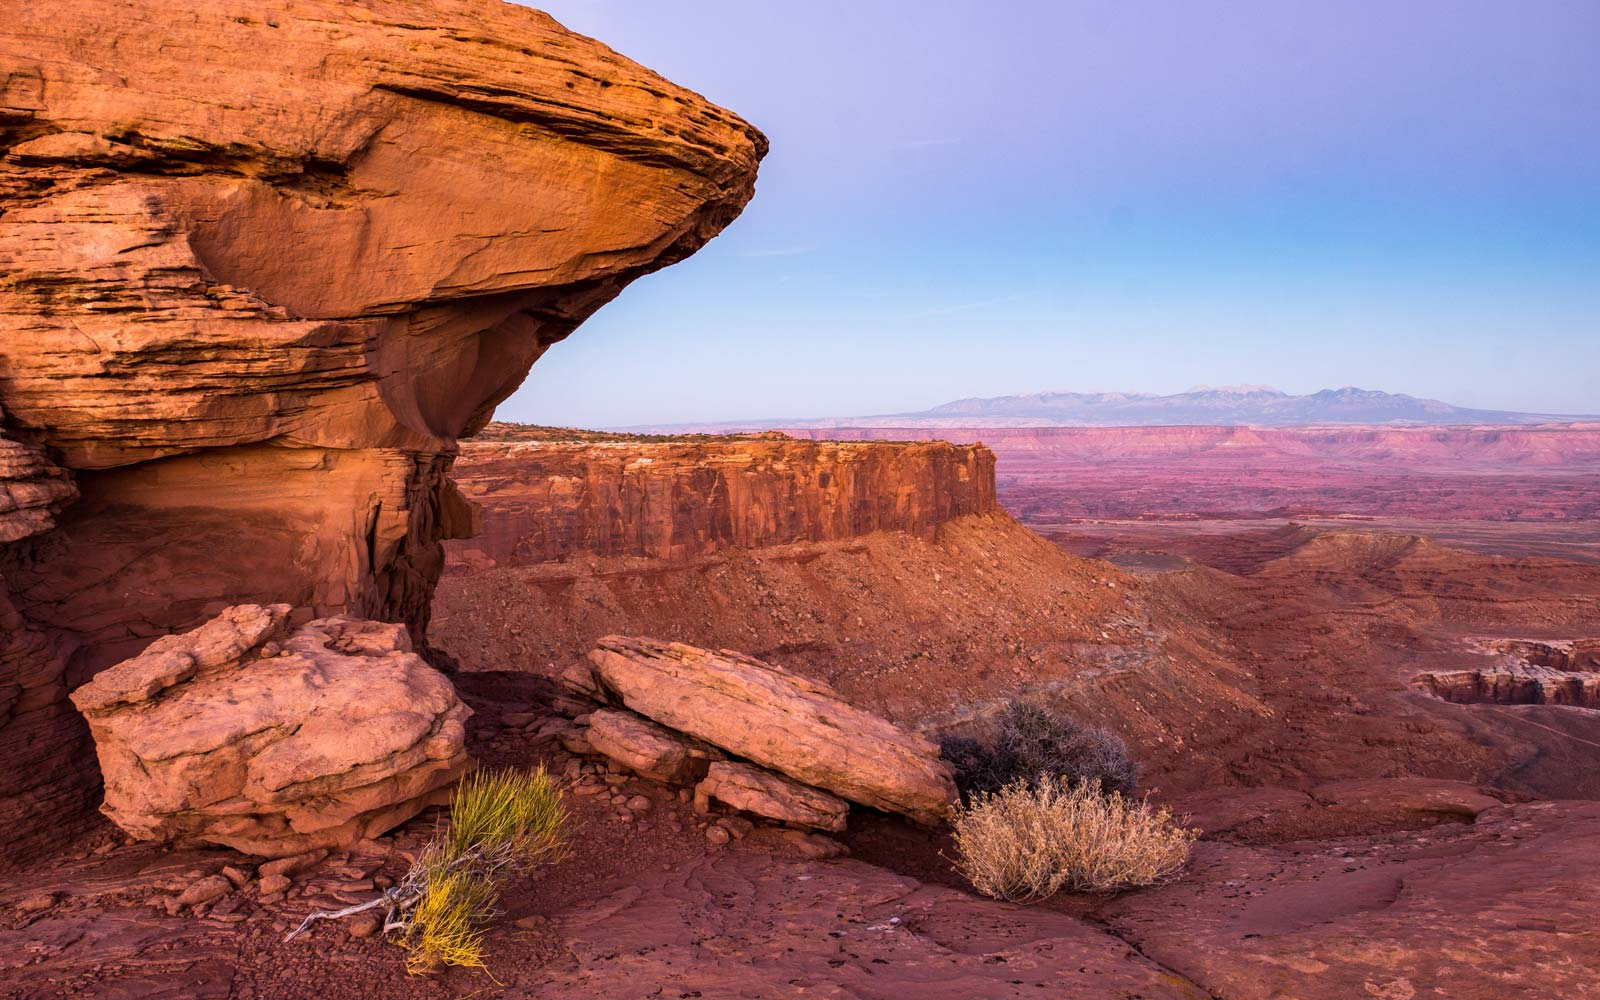 Man Who's Visited Every National Park Says These are the 12 Best